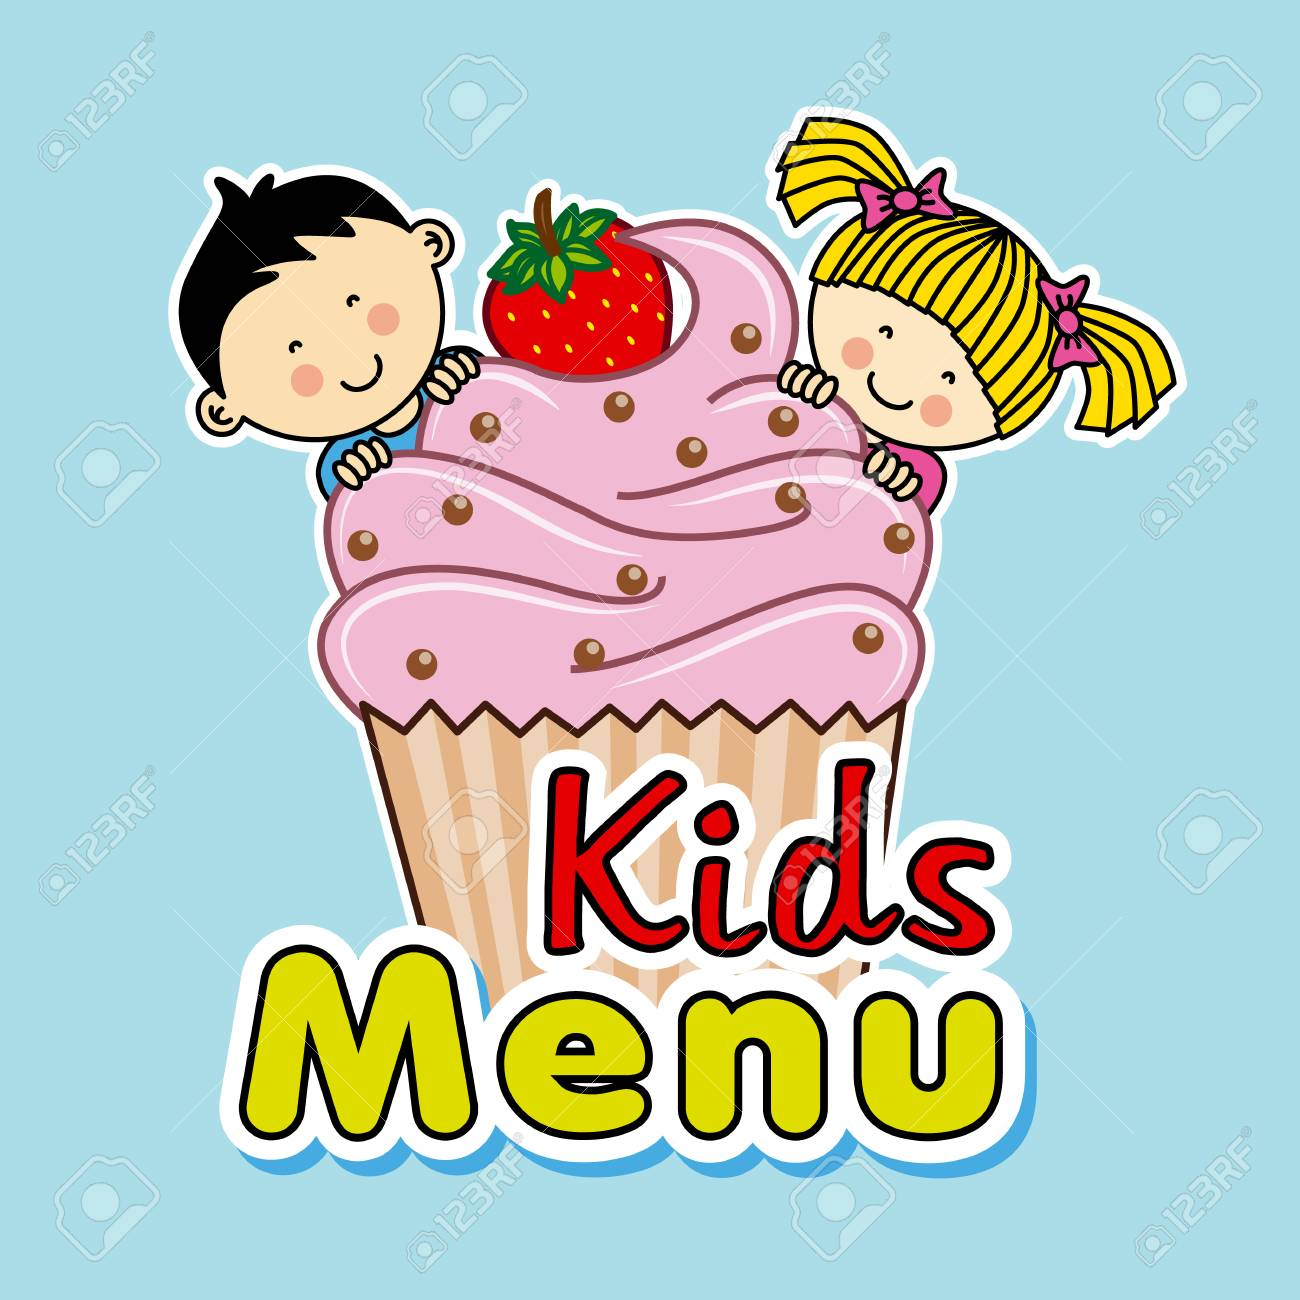 Ids menu children with a muffin royalty free cliparts vectors ids menu children with a muffin stock vector 41507587 voltagebd Gallery